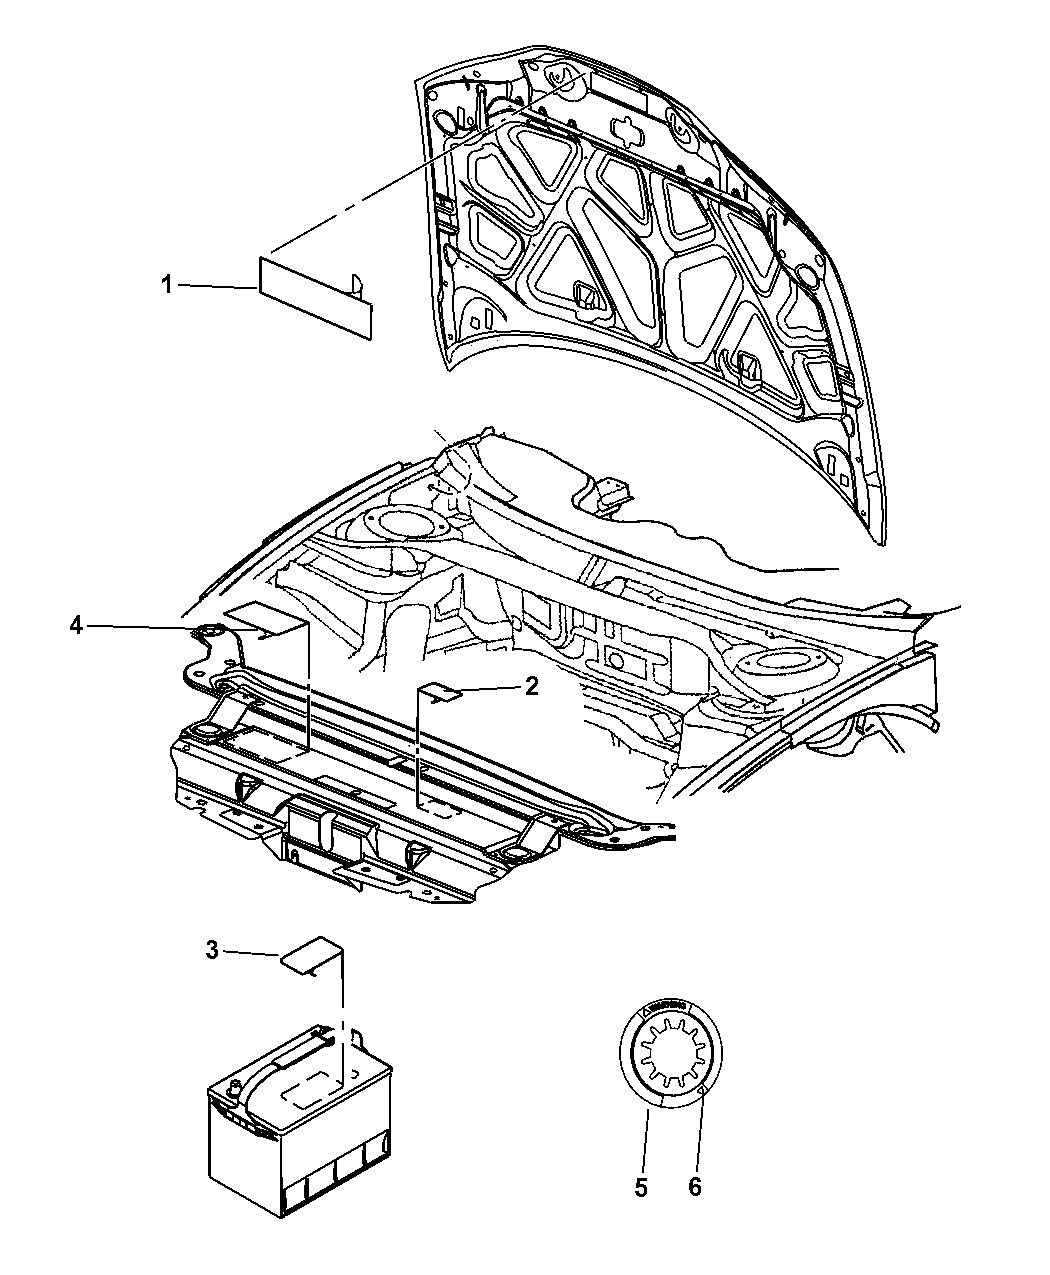 [WRG-2262] Dodge Challenger Engine Diagram